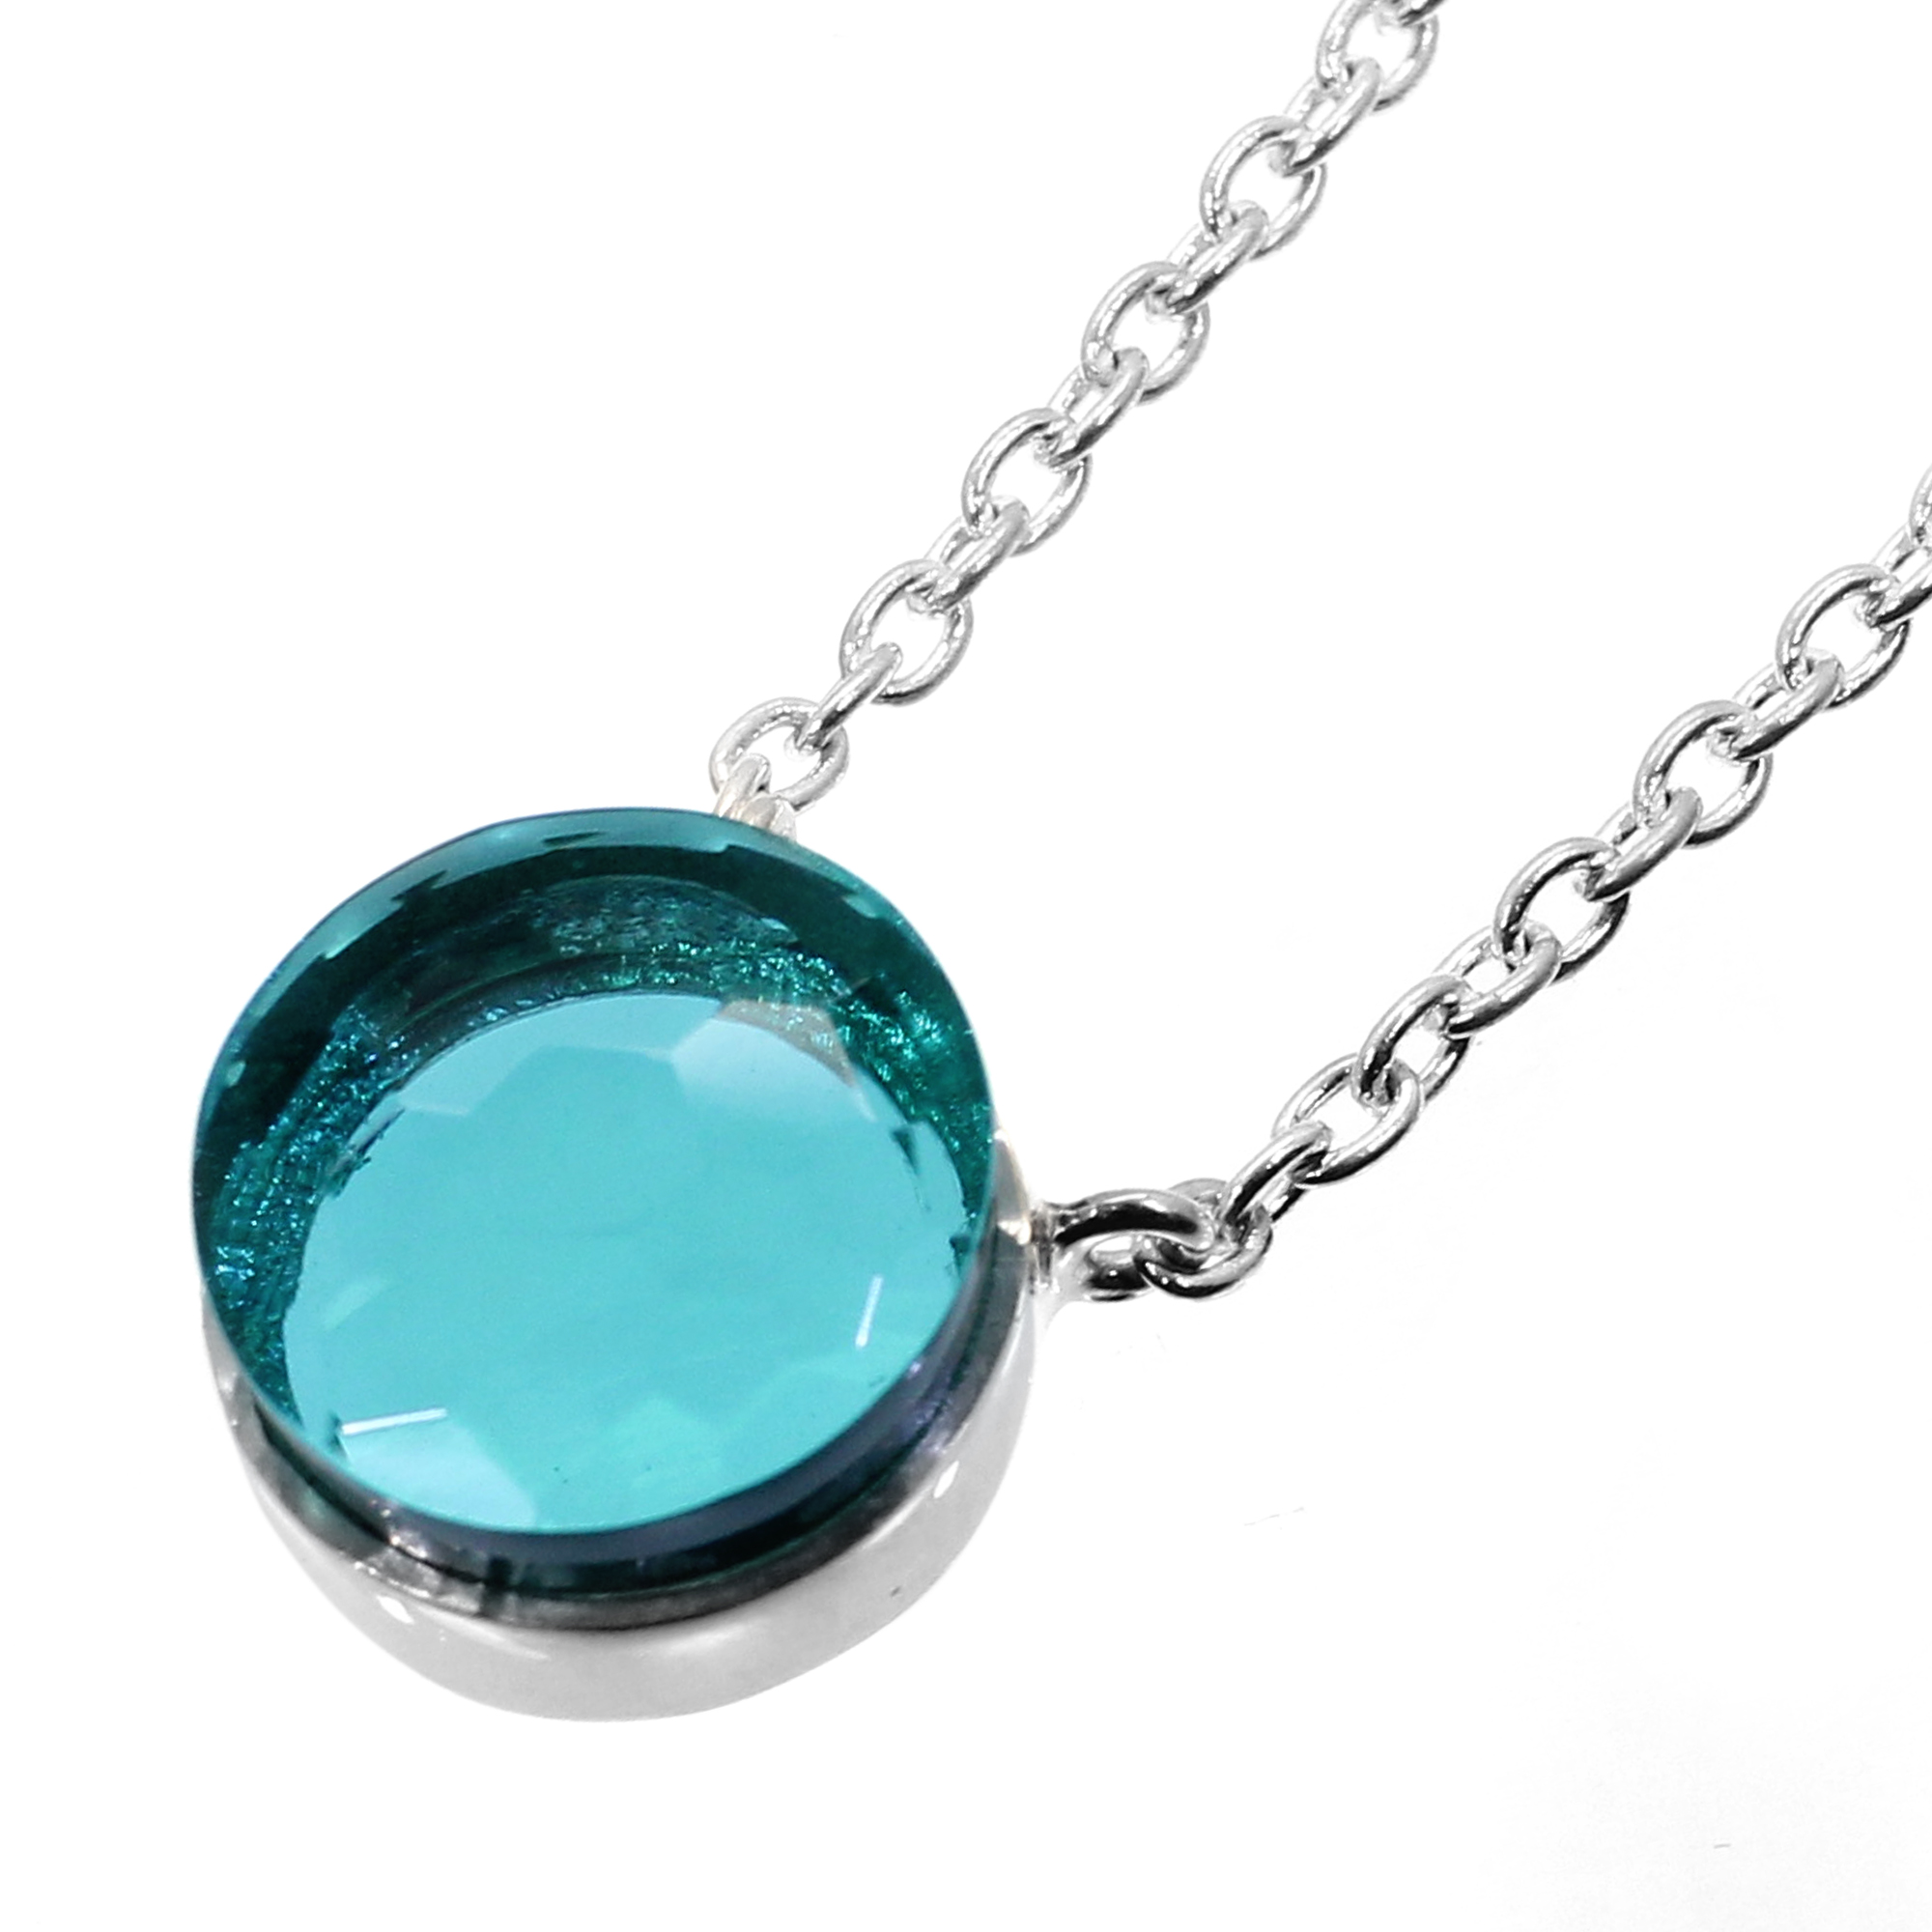 Apatite Hydro 925 Sterling Silver Long Chain Necklace